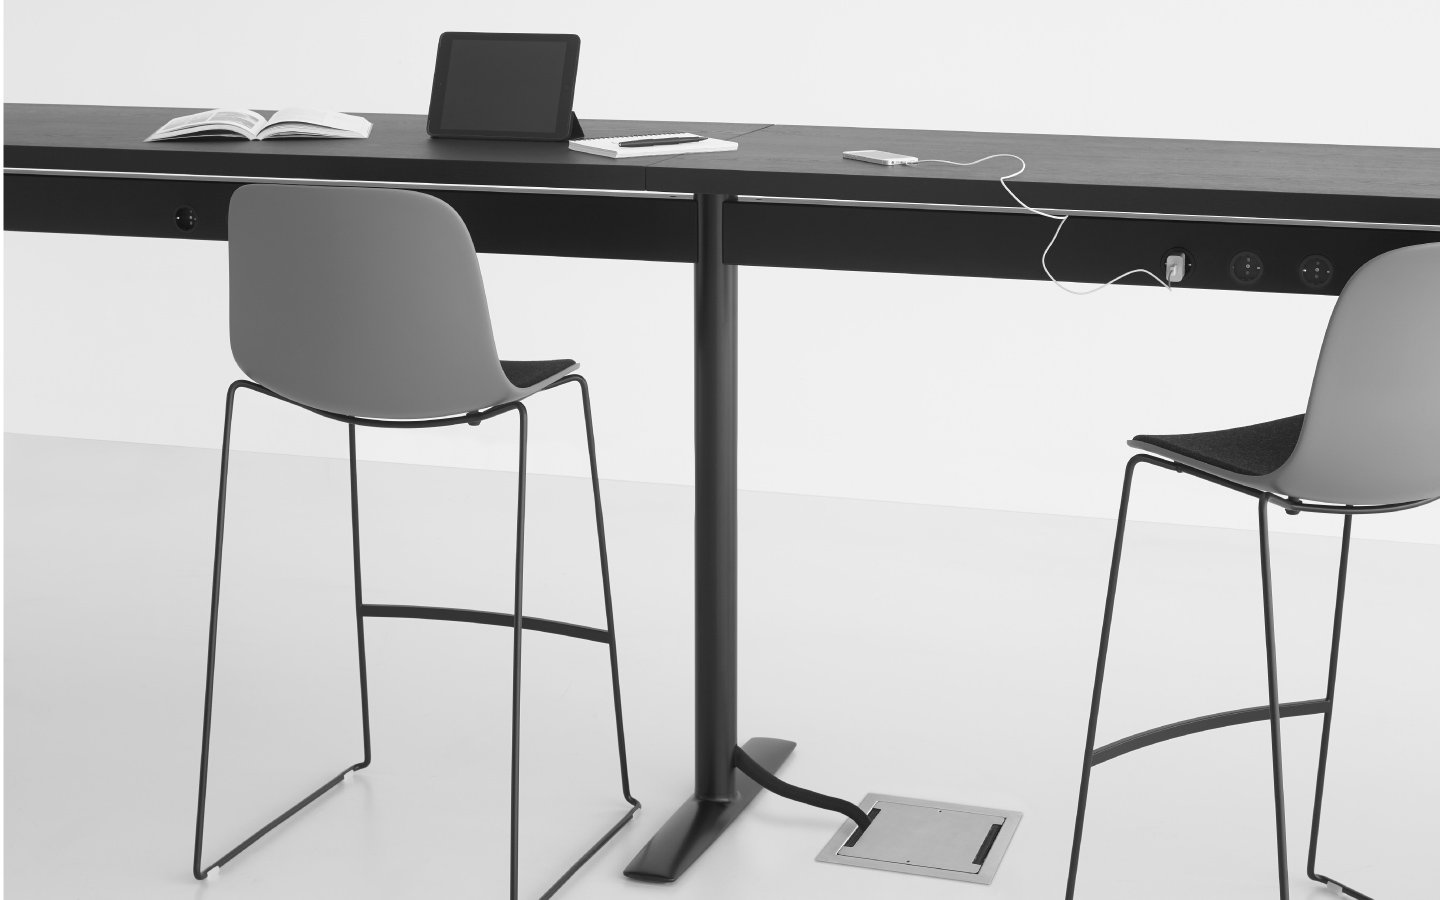 Acca Table desk from lapalma, designed by Francesco Rota